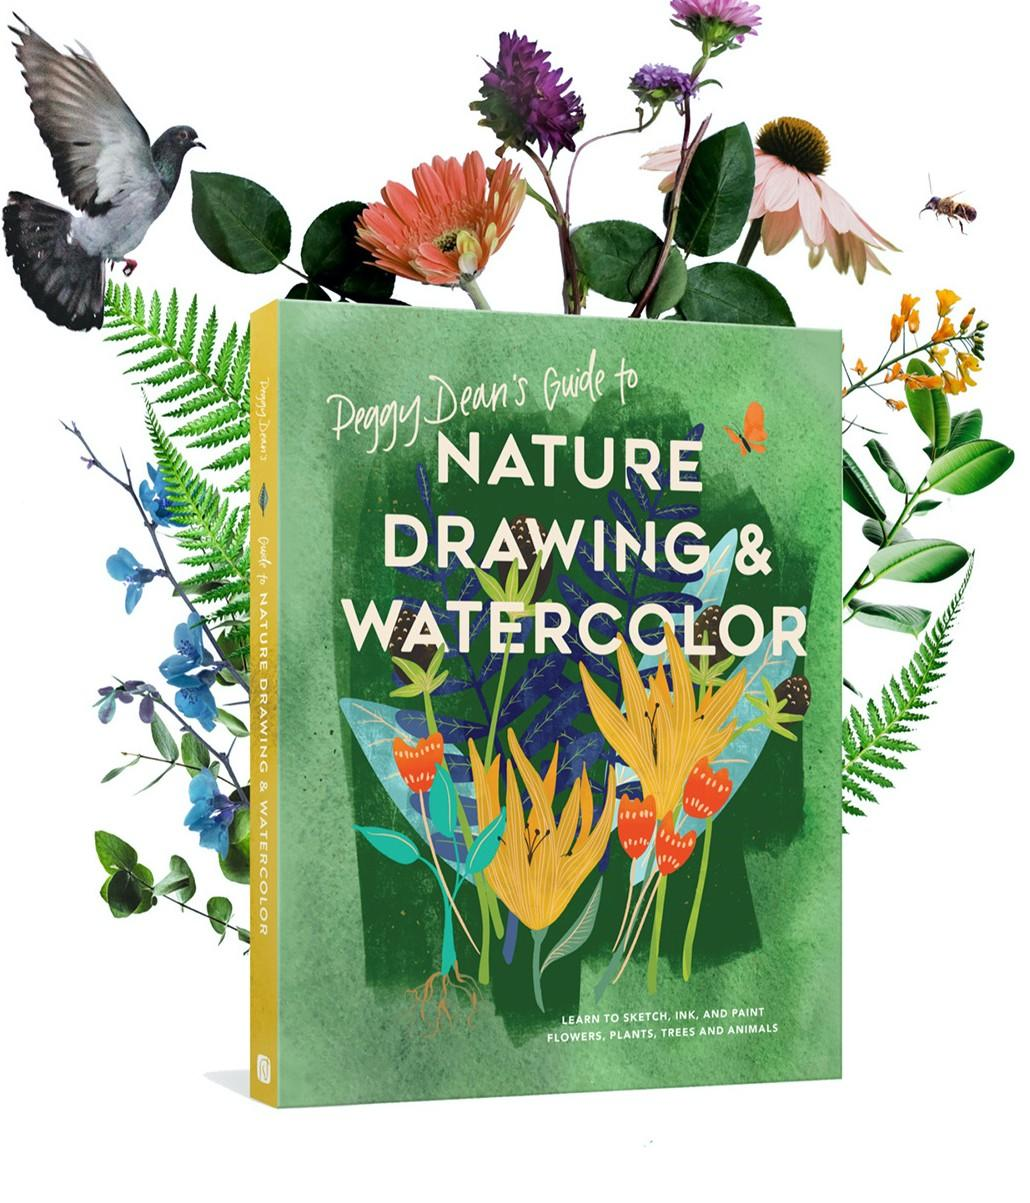 Nature Drawing and Watercolor Book